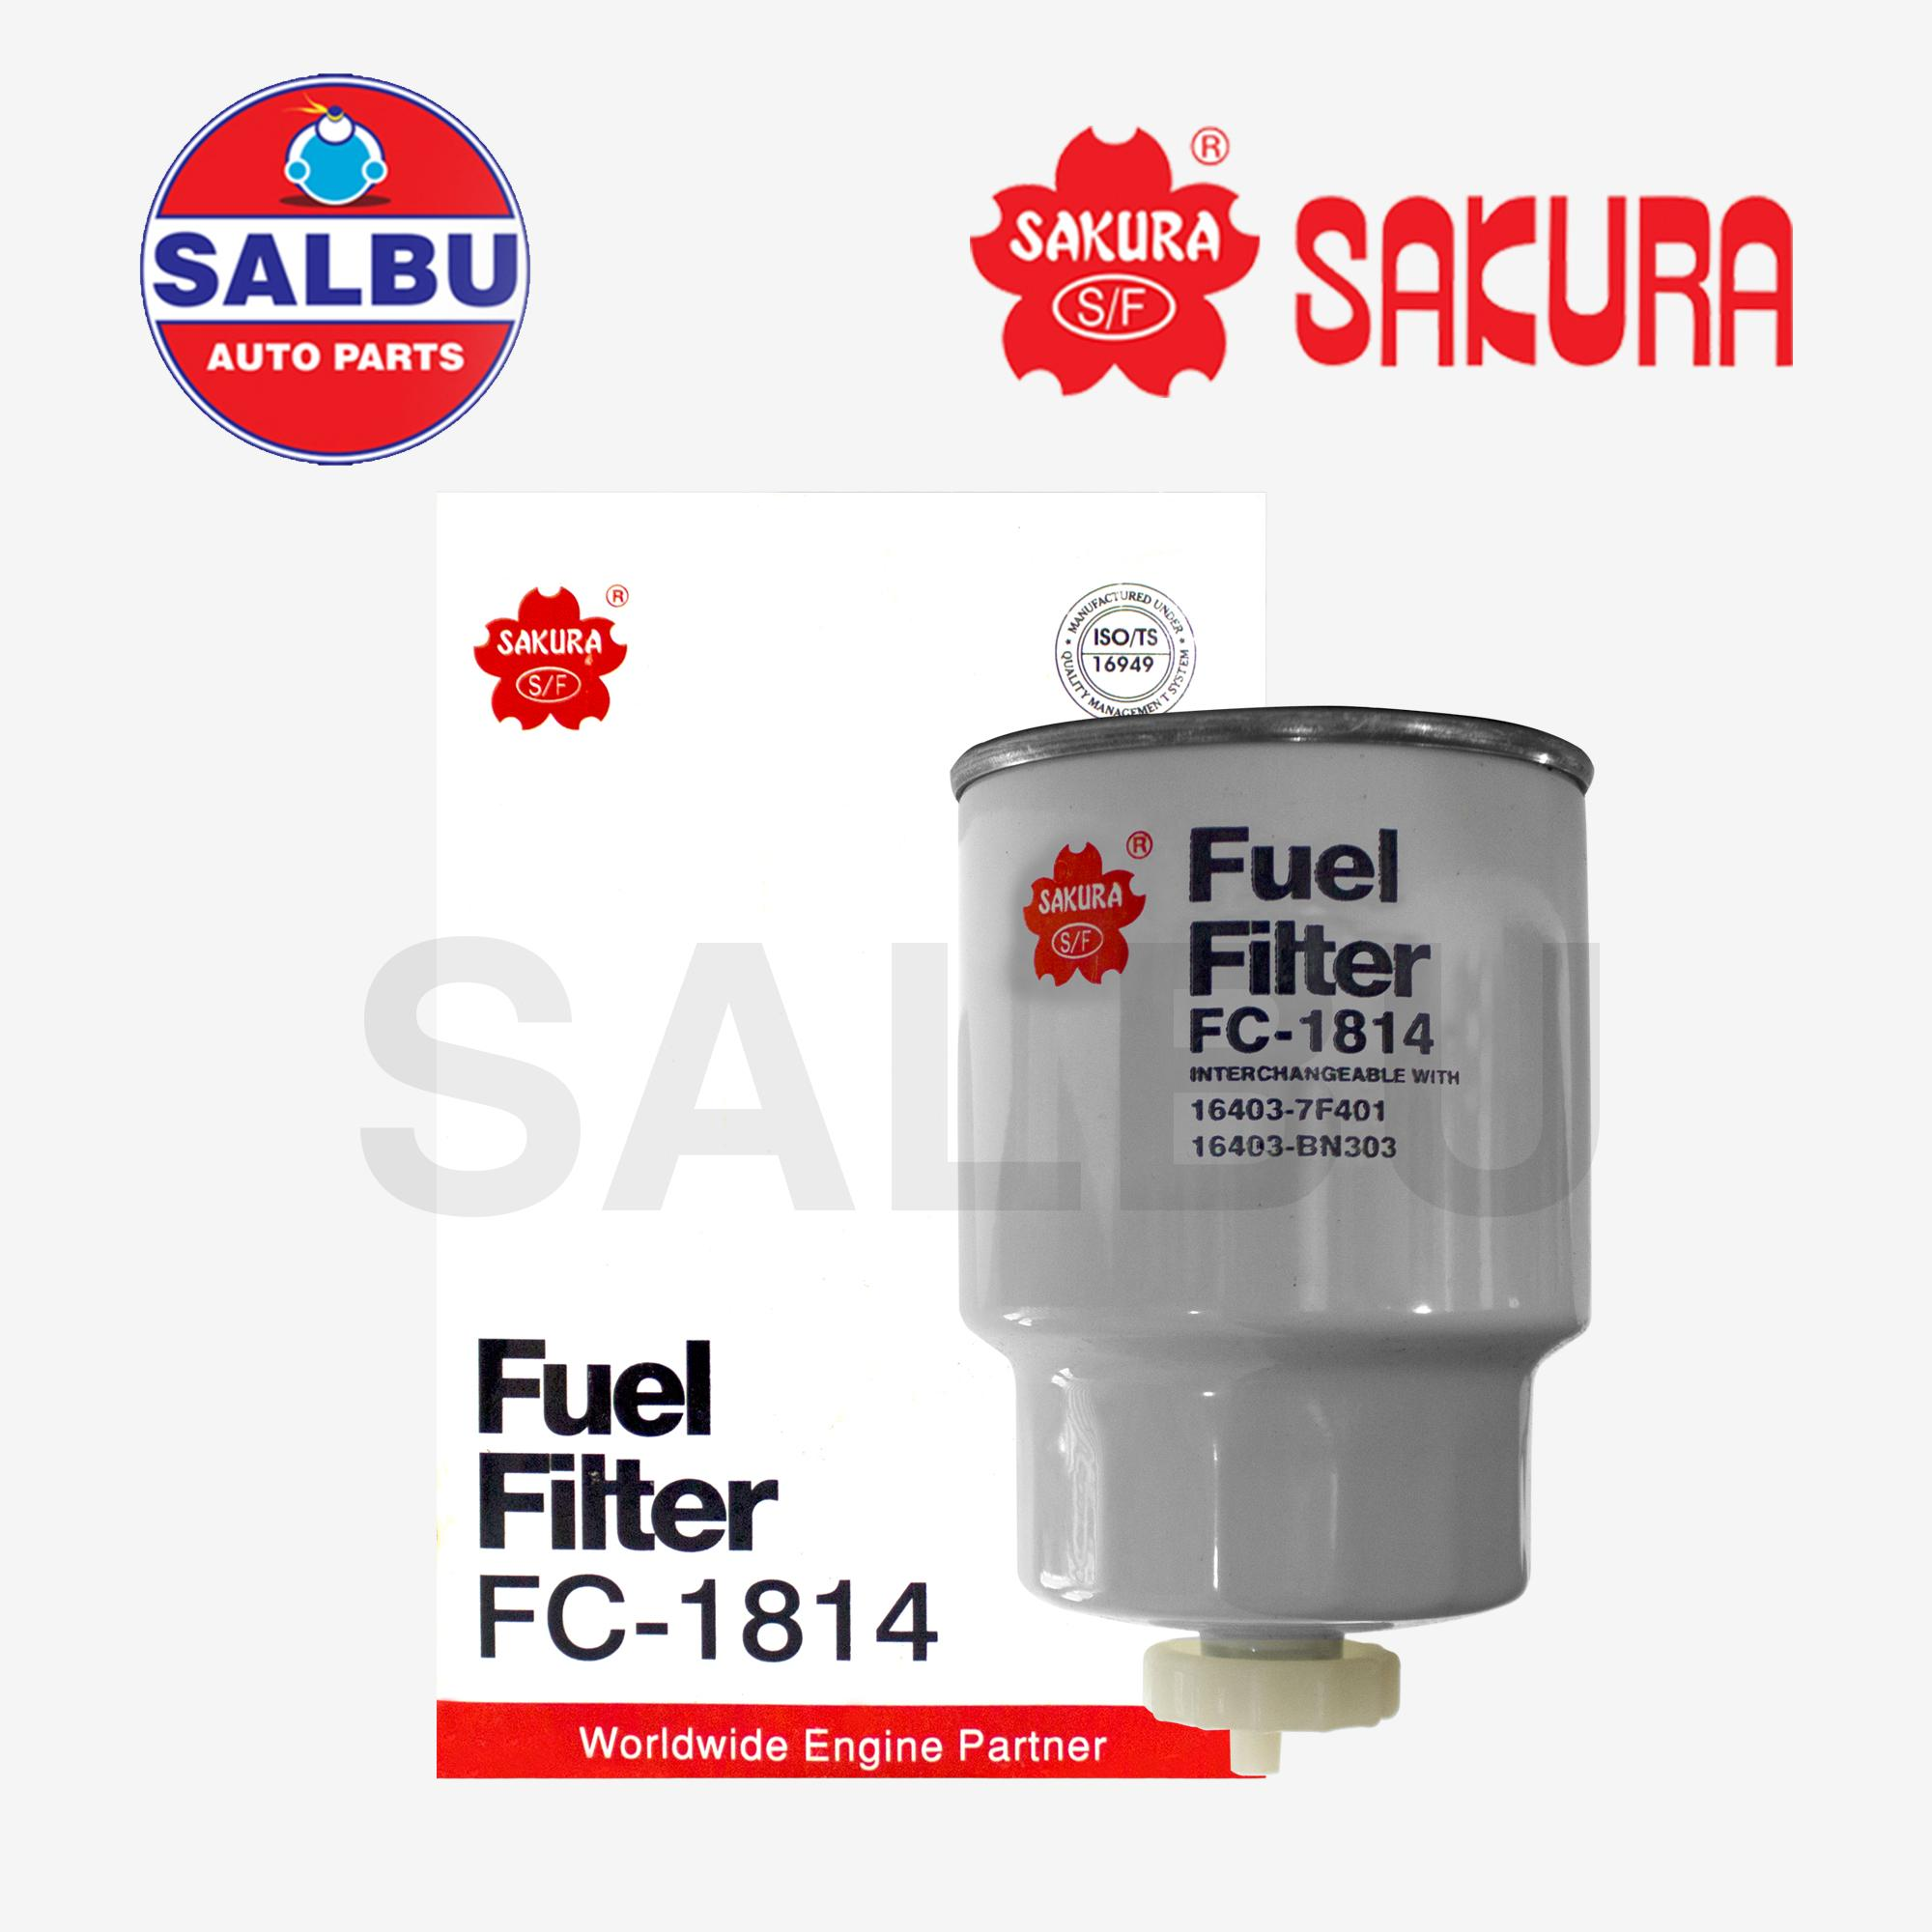 Buy Sell Cheapest Getek Ztto Yd25 Best Quality Product Deals Nissan Navara Fuel Filters Sakura Filter Fc 1814 For Yd22